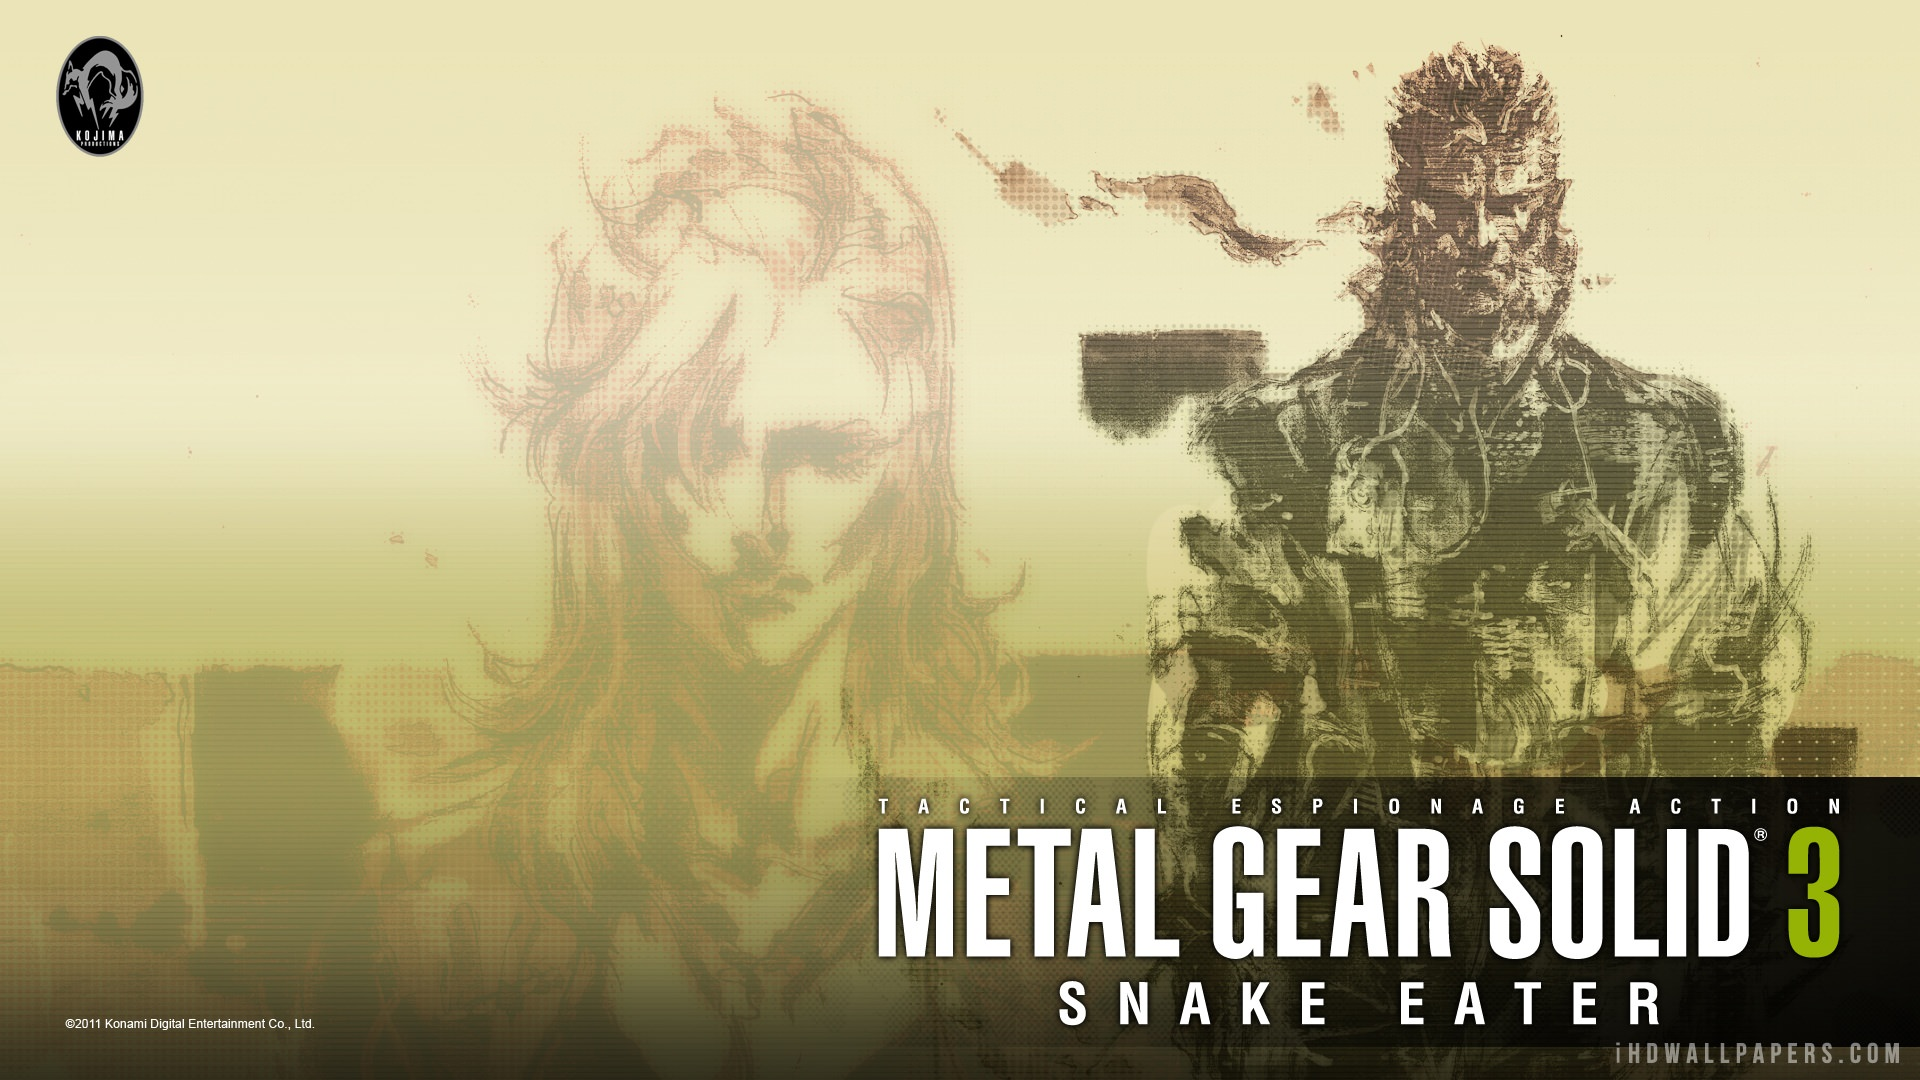 metal_gear_solid_3_snake_eater-1920x1080